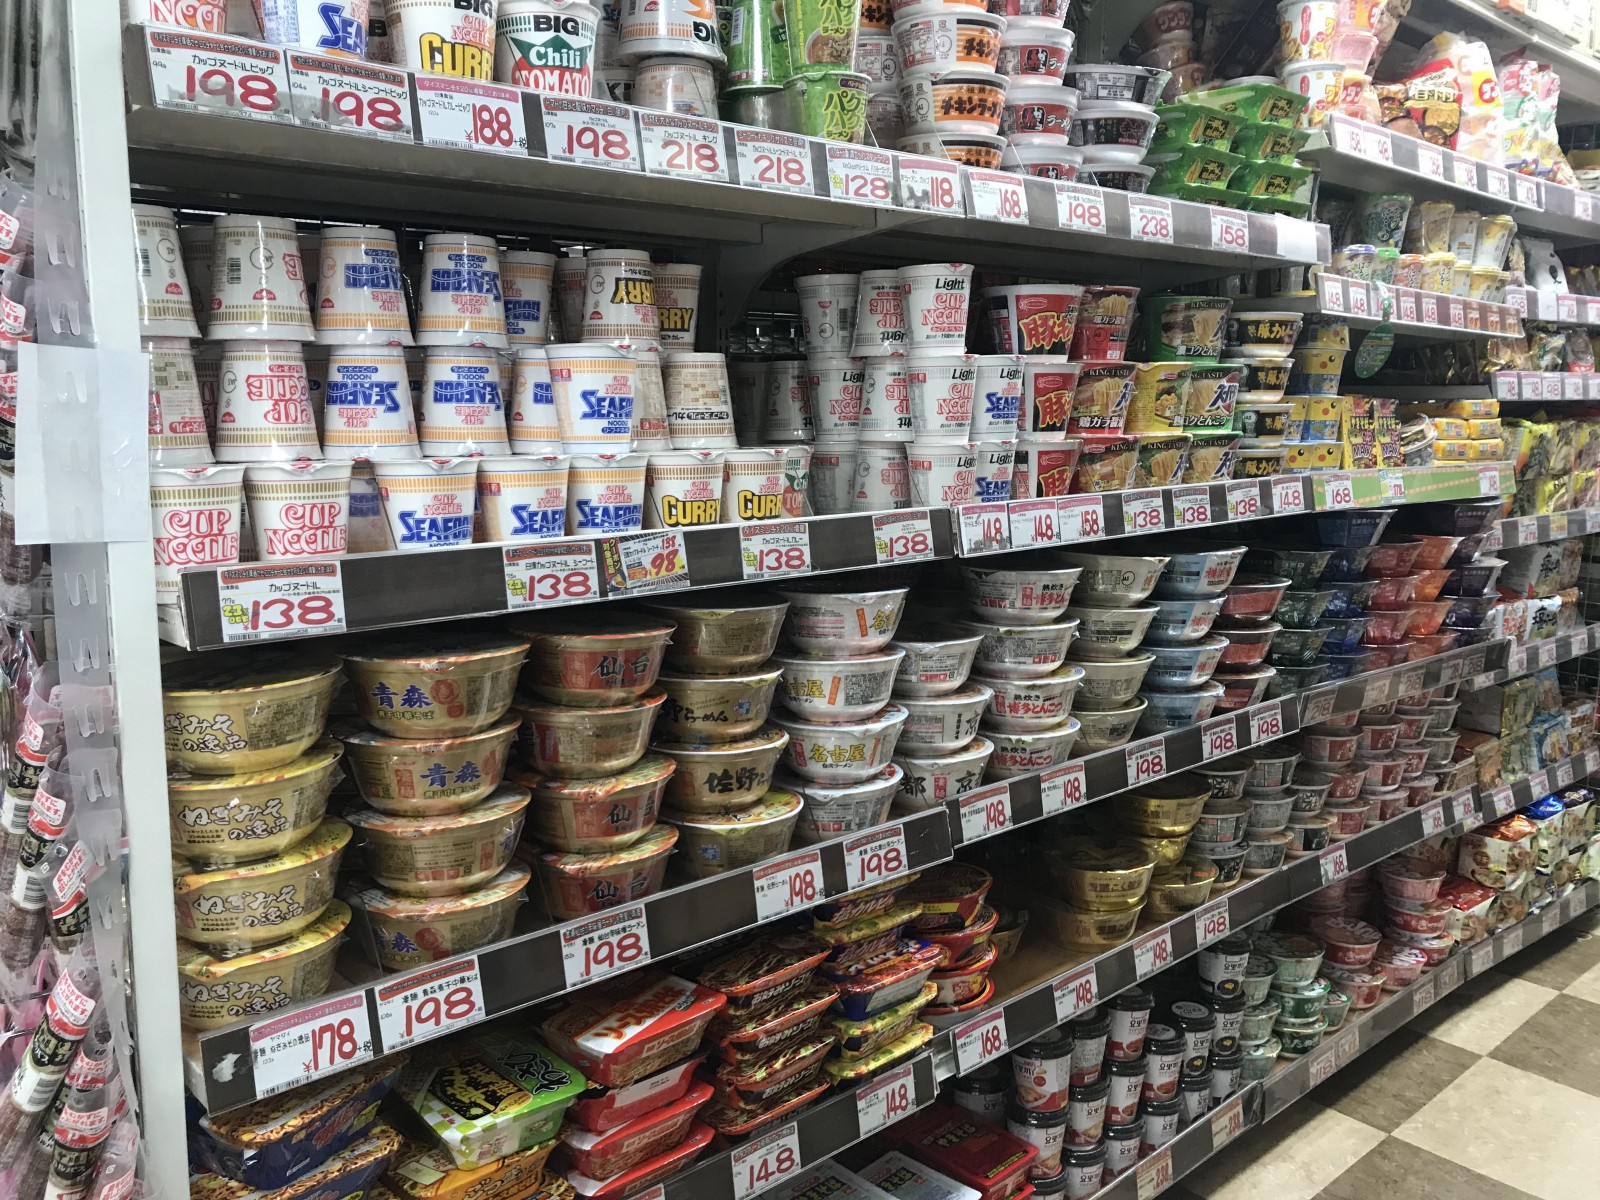 A variety of cup noodles sold in Japan